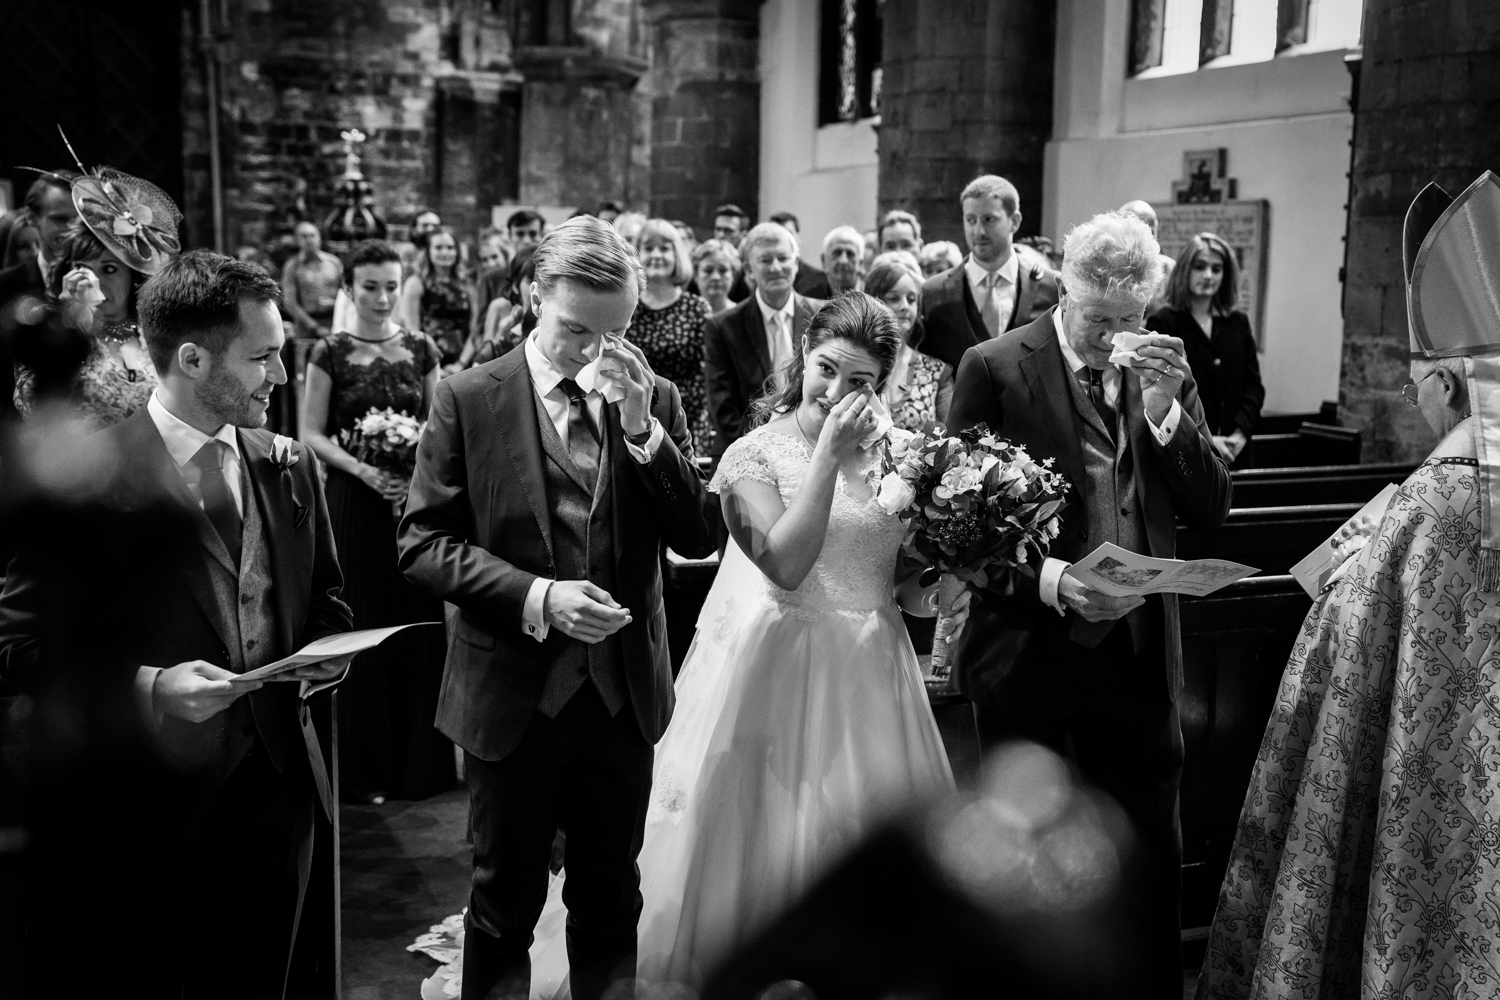 Principal Hotel York Wedding Photographer - a few tears during the ceremony